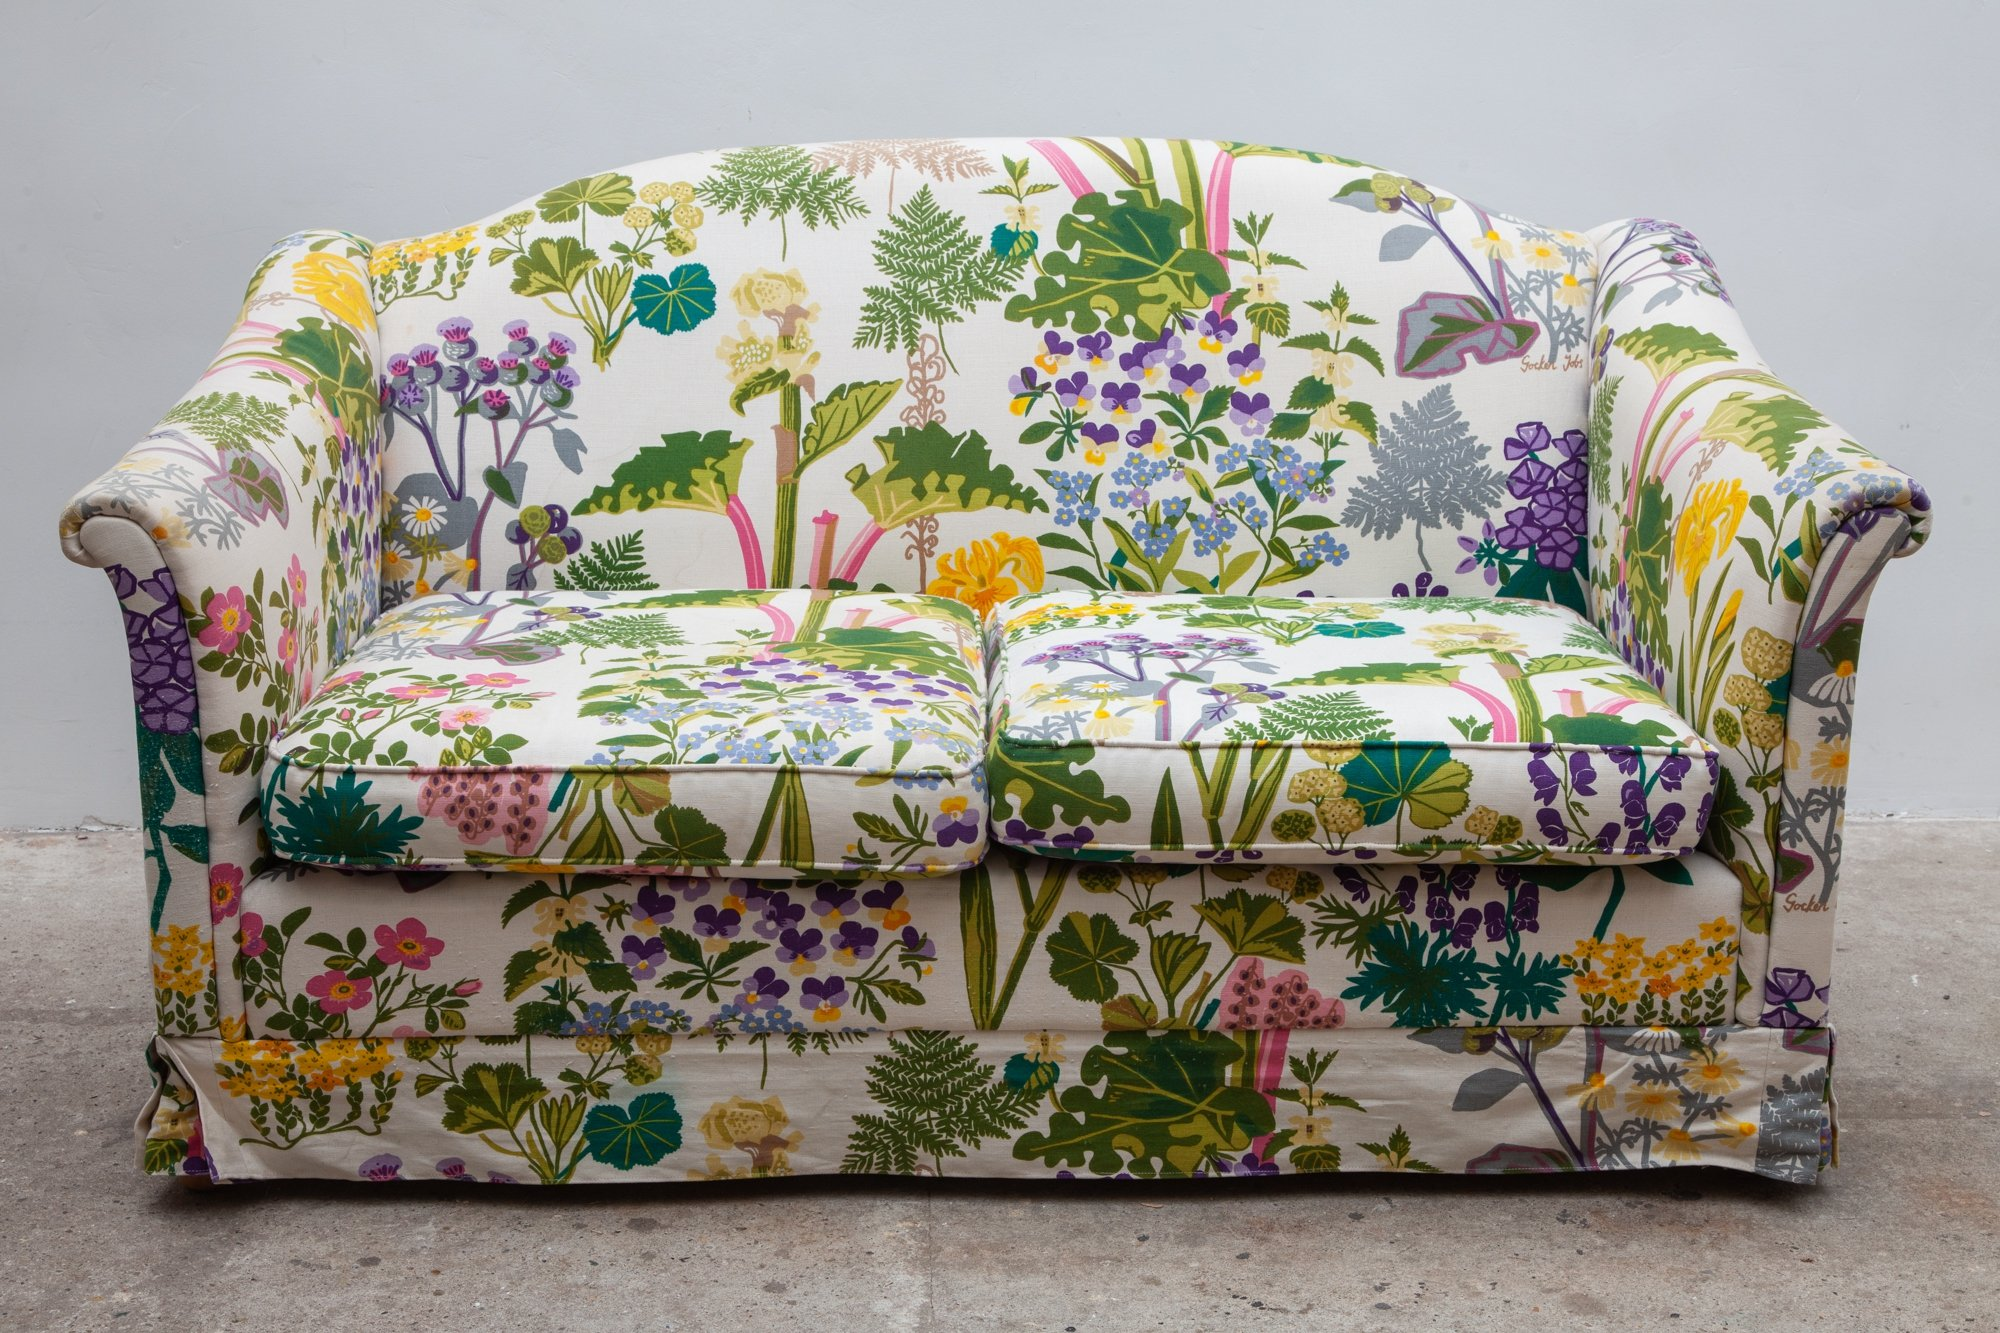 Vintage Fl Print Sofa With Fabric By Gocken Jobs 1969